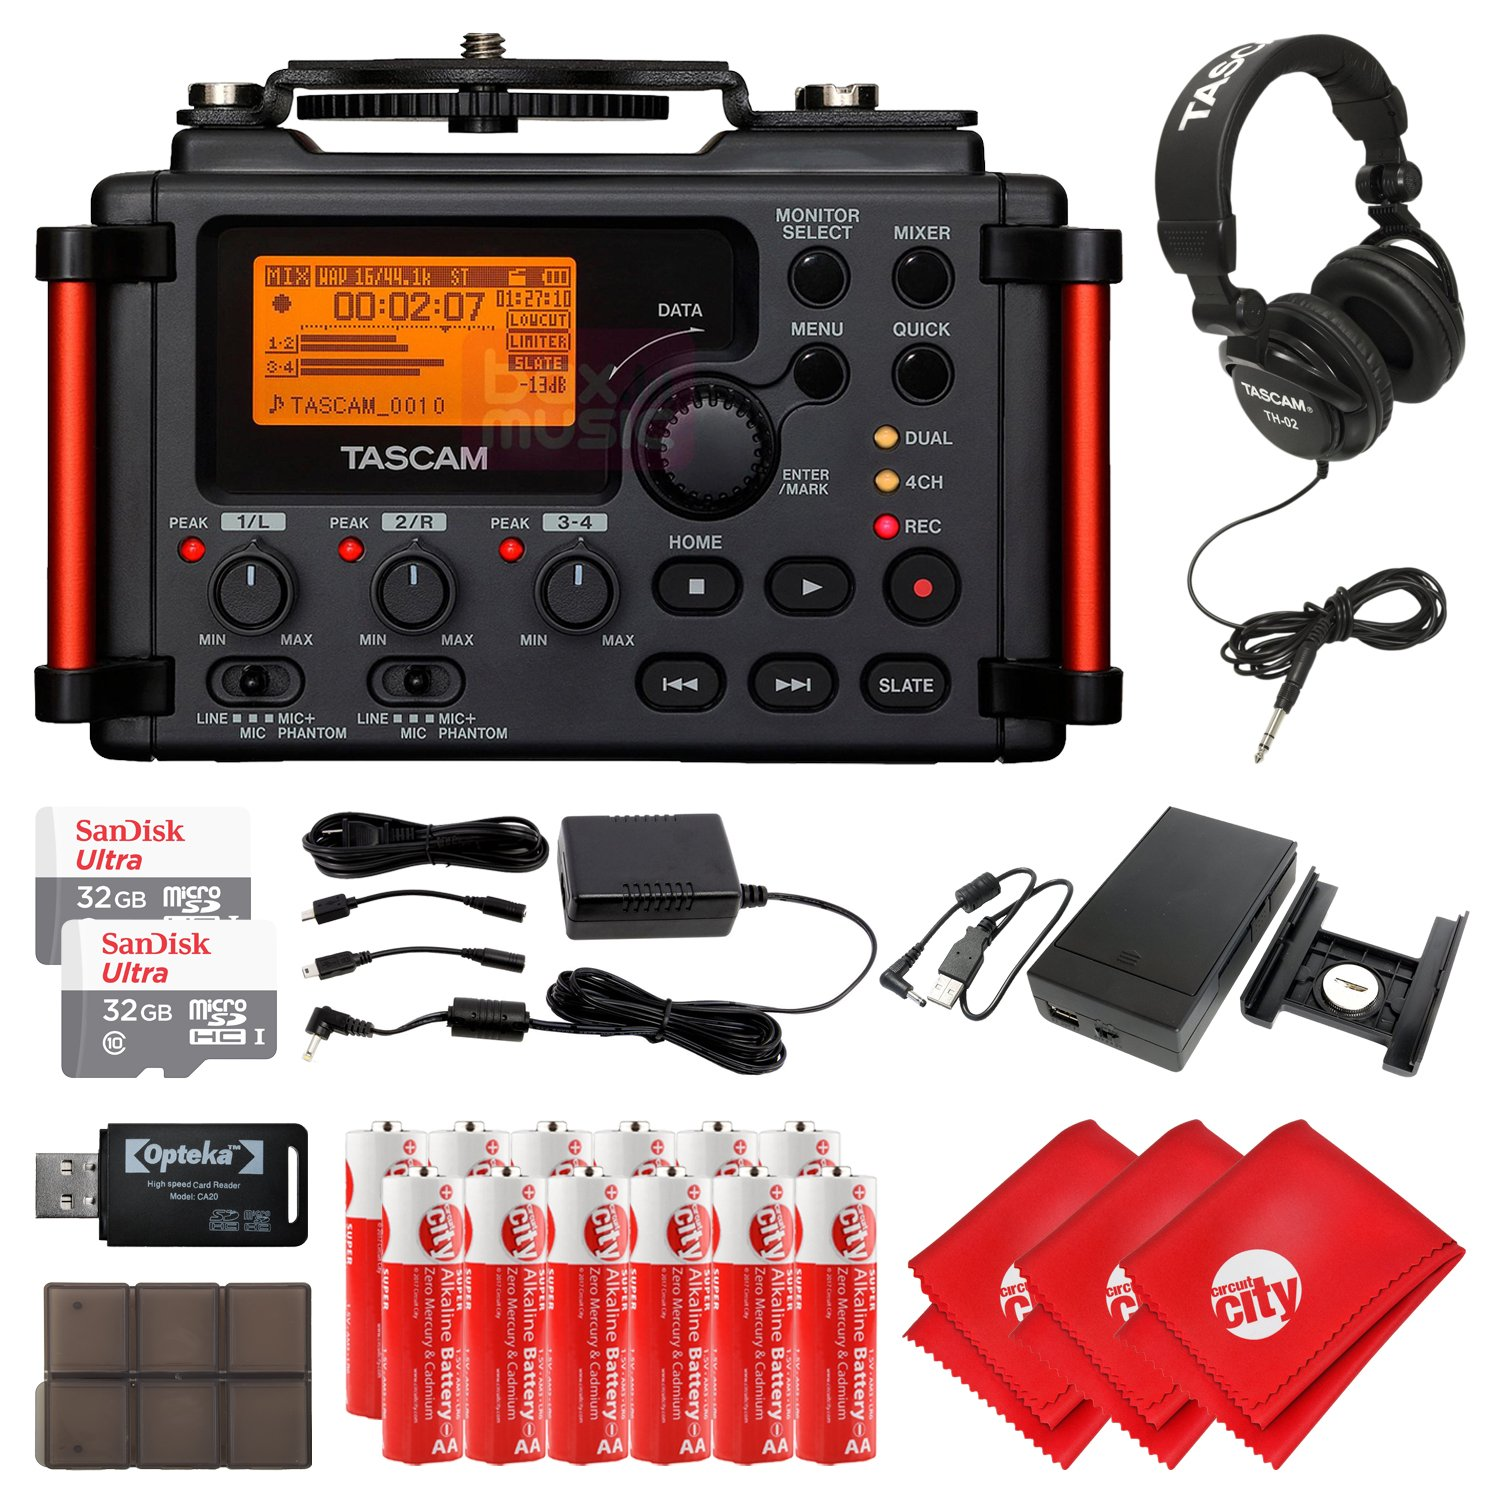 TASCAM 4-Channel Portable Audio Recorder for DSLR Filmmakers, Headphones, 2 pcs 32GB Micro SD Card, 12 pcs AA Batteries, 3 pcs Microfiber Cleaning Cloth and Accessory Bundle, Black (DR-60DmkII)